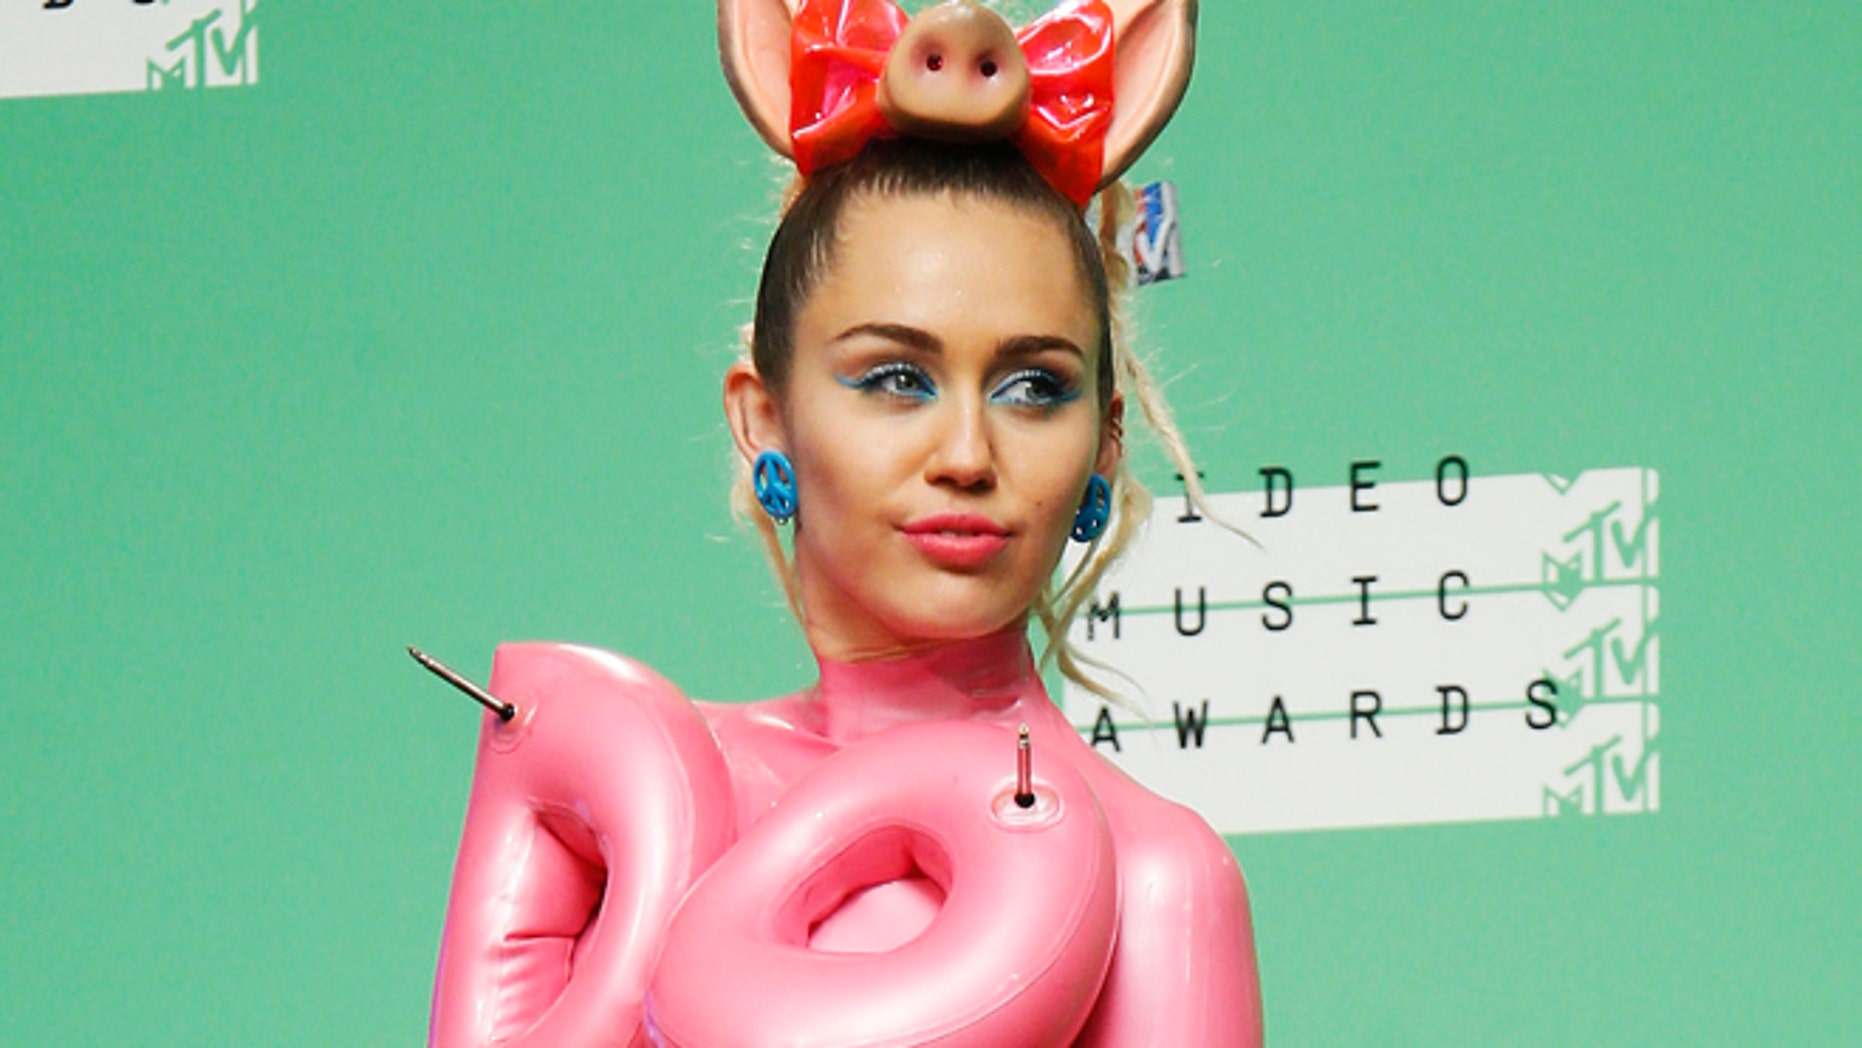 August 30, 2015. Miley Cyrus poses backstage after hosting the 2015 MTV Video Music Awards in Los Angeles, California.